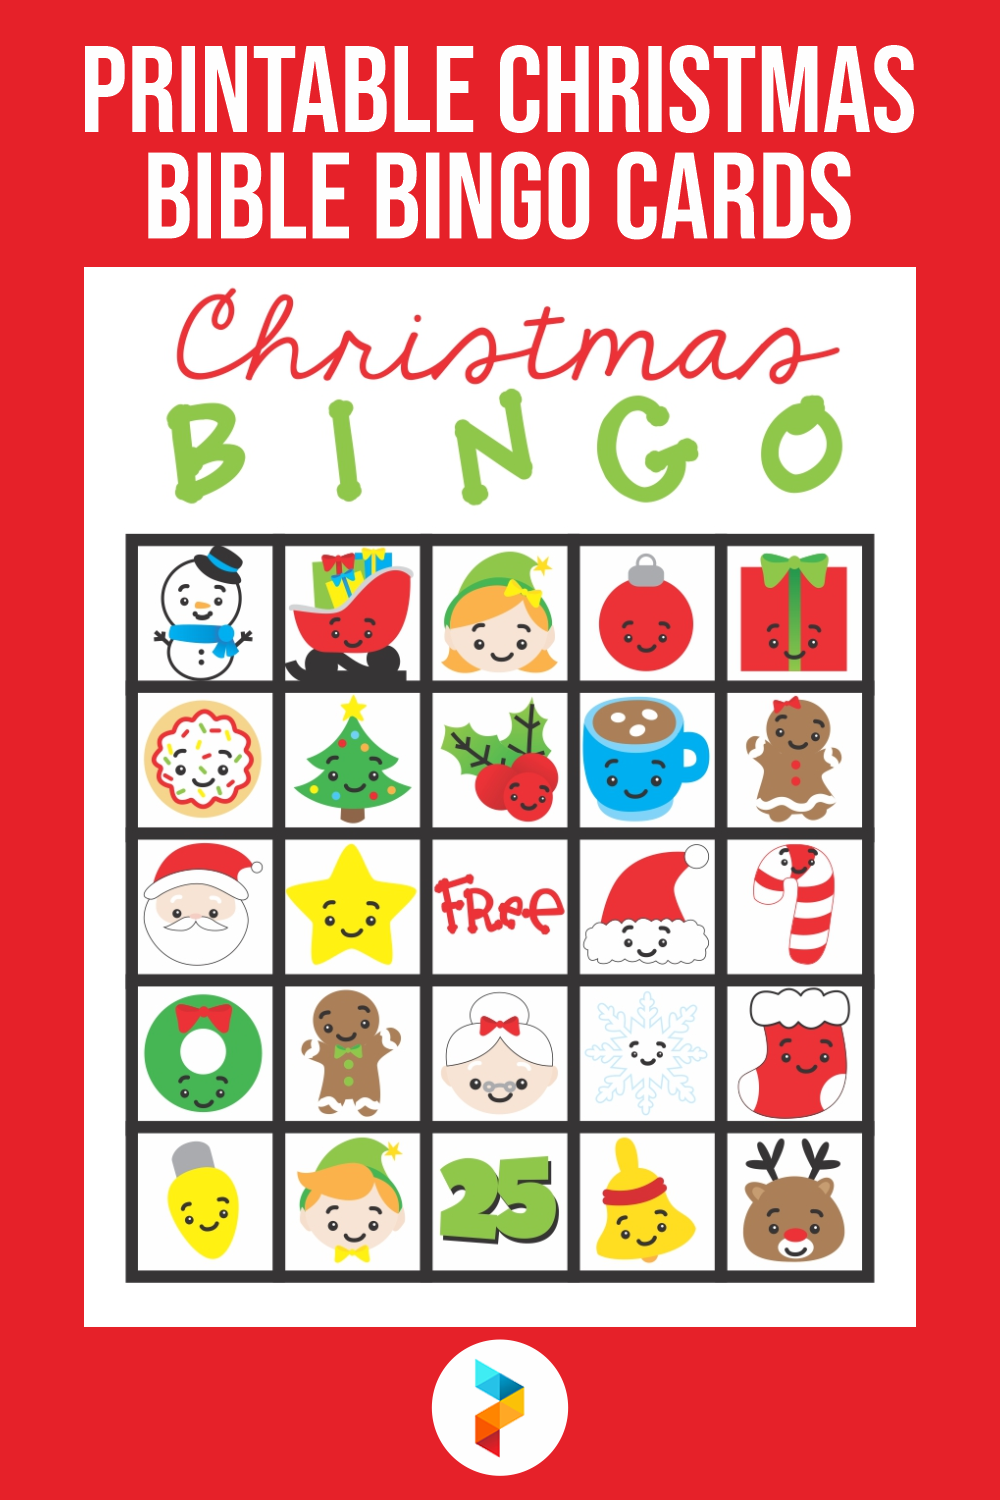 Printable Christmas Bible Bingo Cards